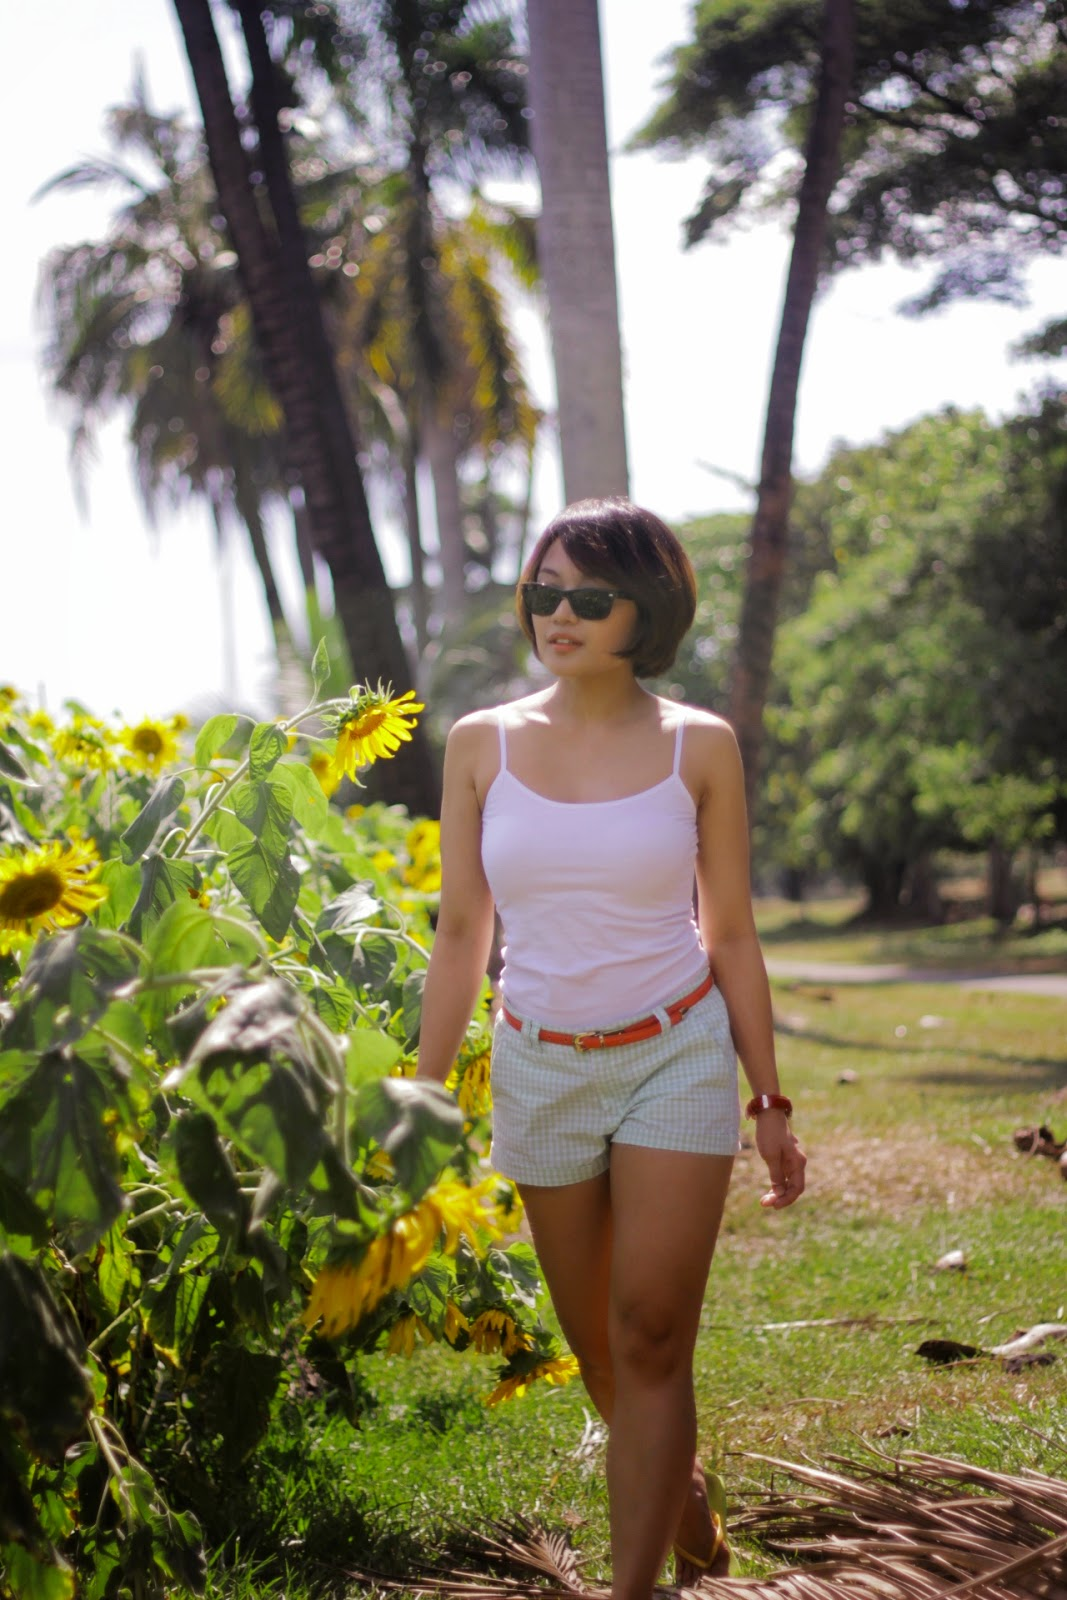 sunflower, UP Diliman, summer outfit, summer blooms